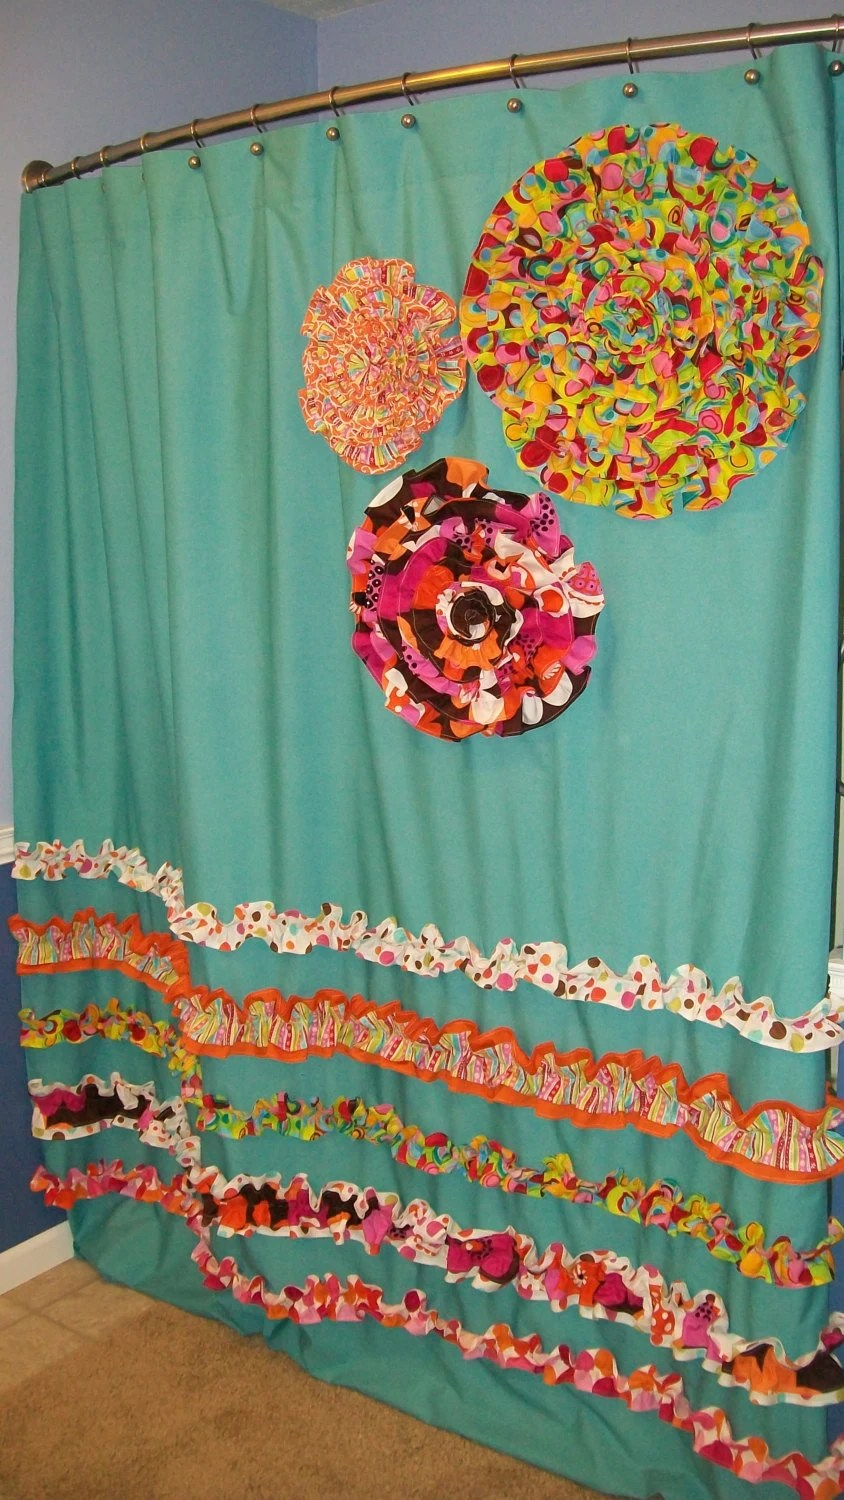 Items Similar To Shower Curtain Custom Made Designer Fabric Ruffles Flowers Aqua Teal Turquise